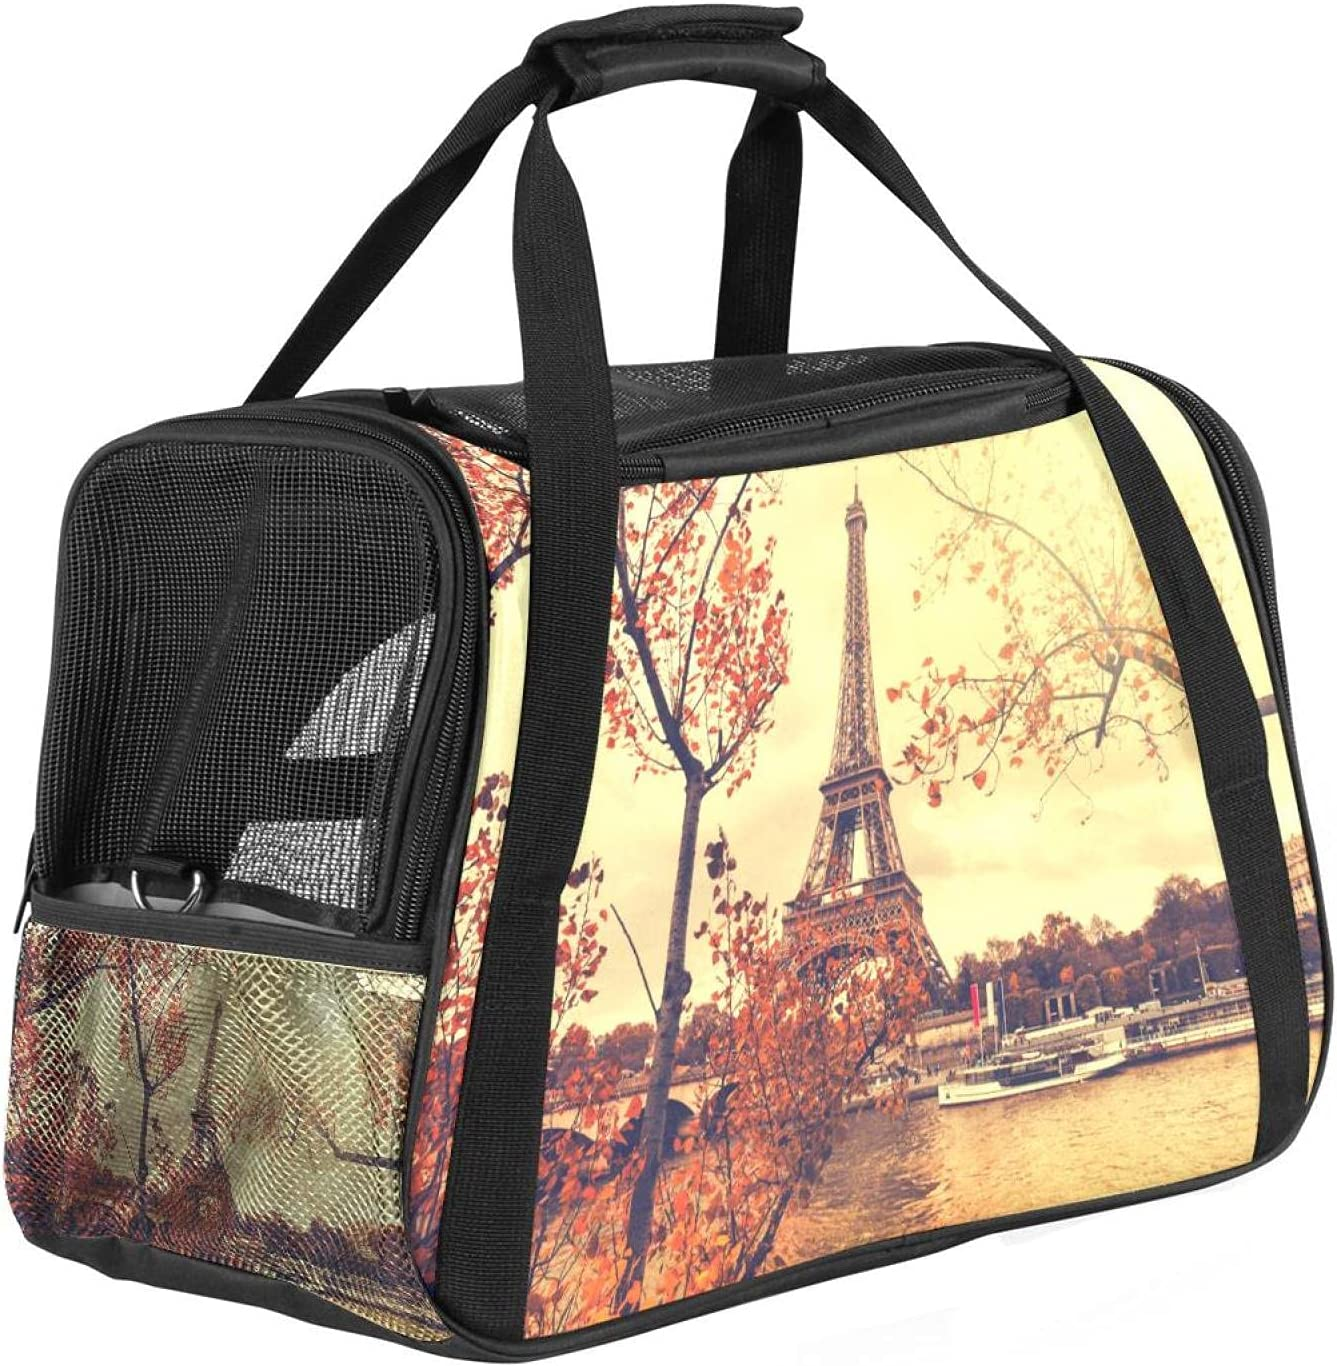 Clearance SALE Limited time Pet Carrier Super special price for Dog and Tra Cats Soft-Sided Approved Airline